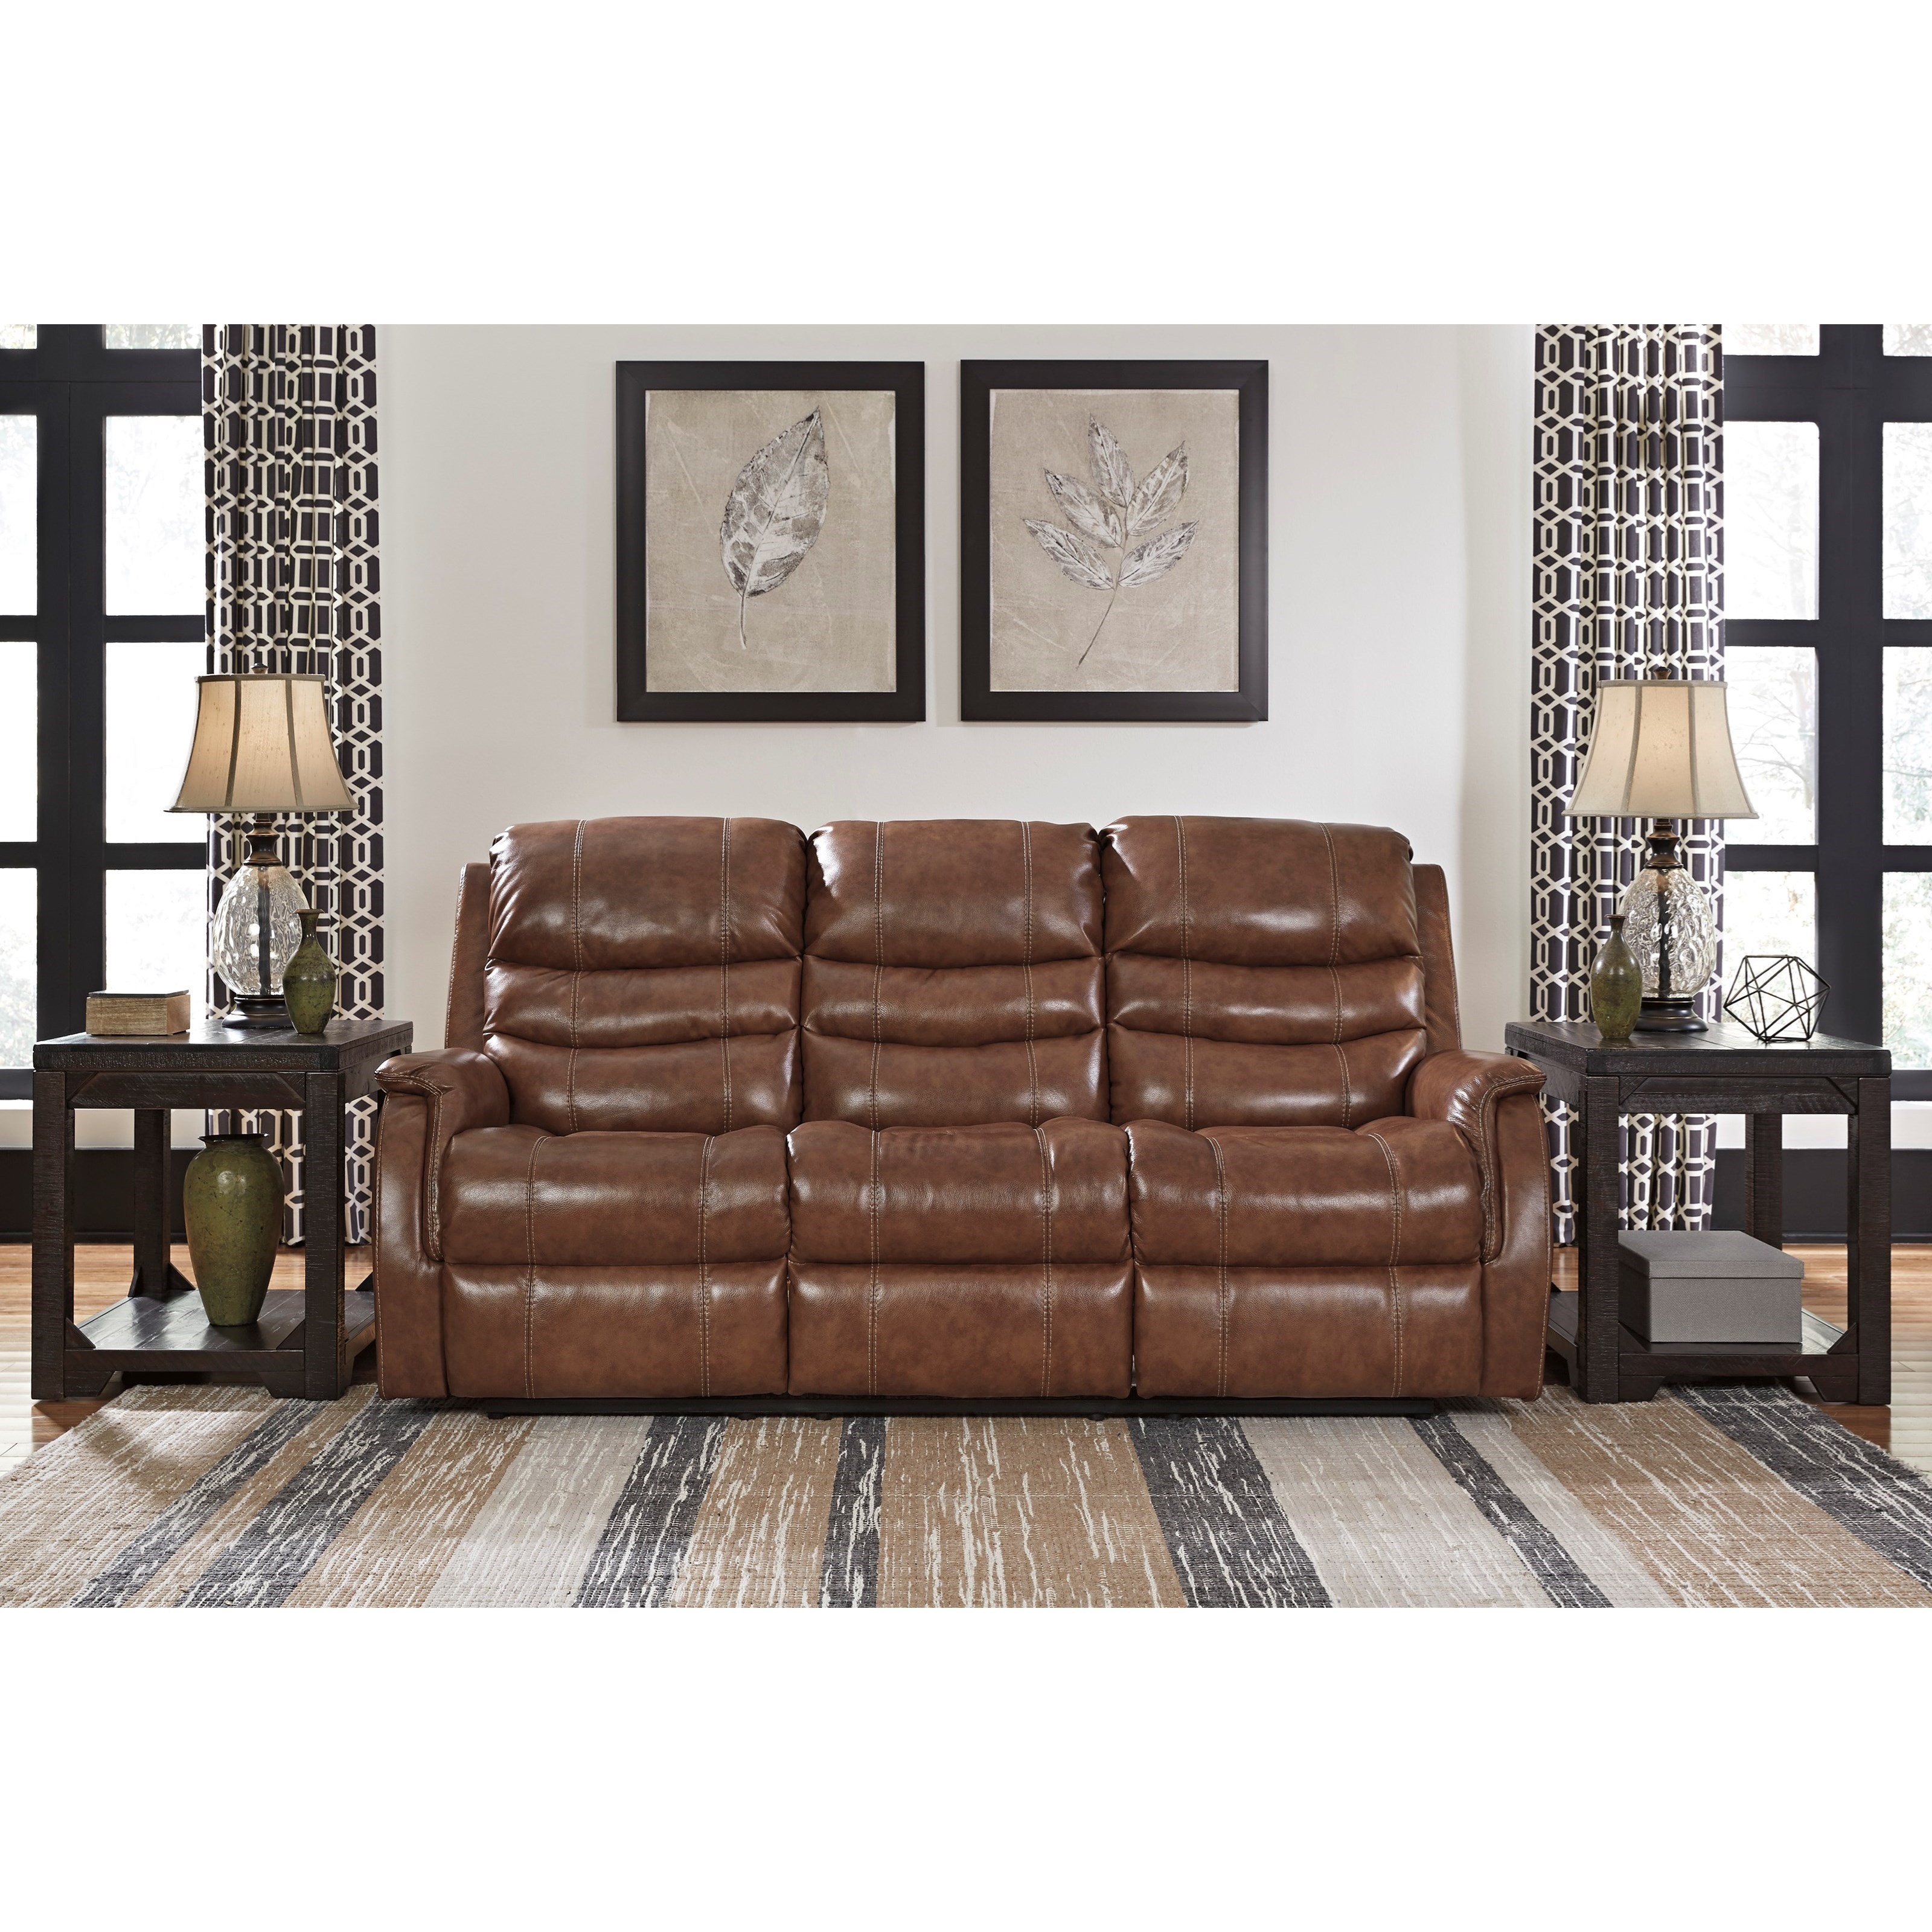 Leather match power reclining sofa w adjustable headrest for American signature furniture locations pa